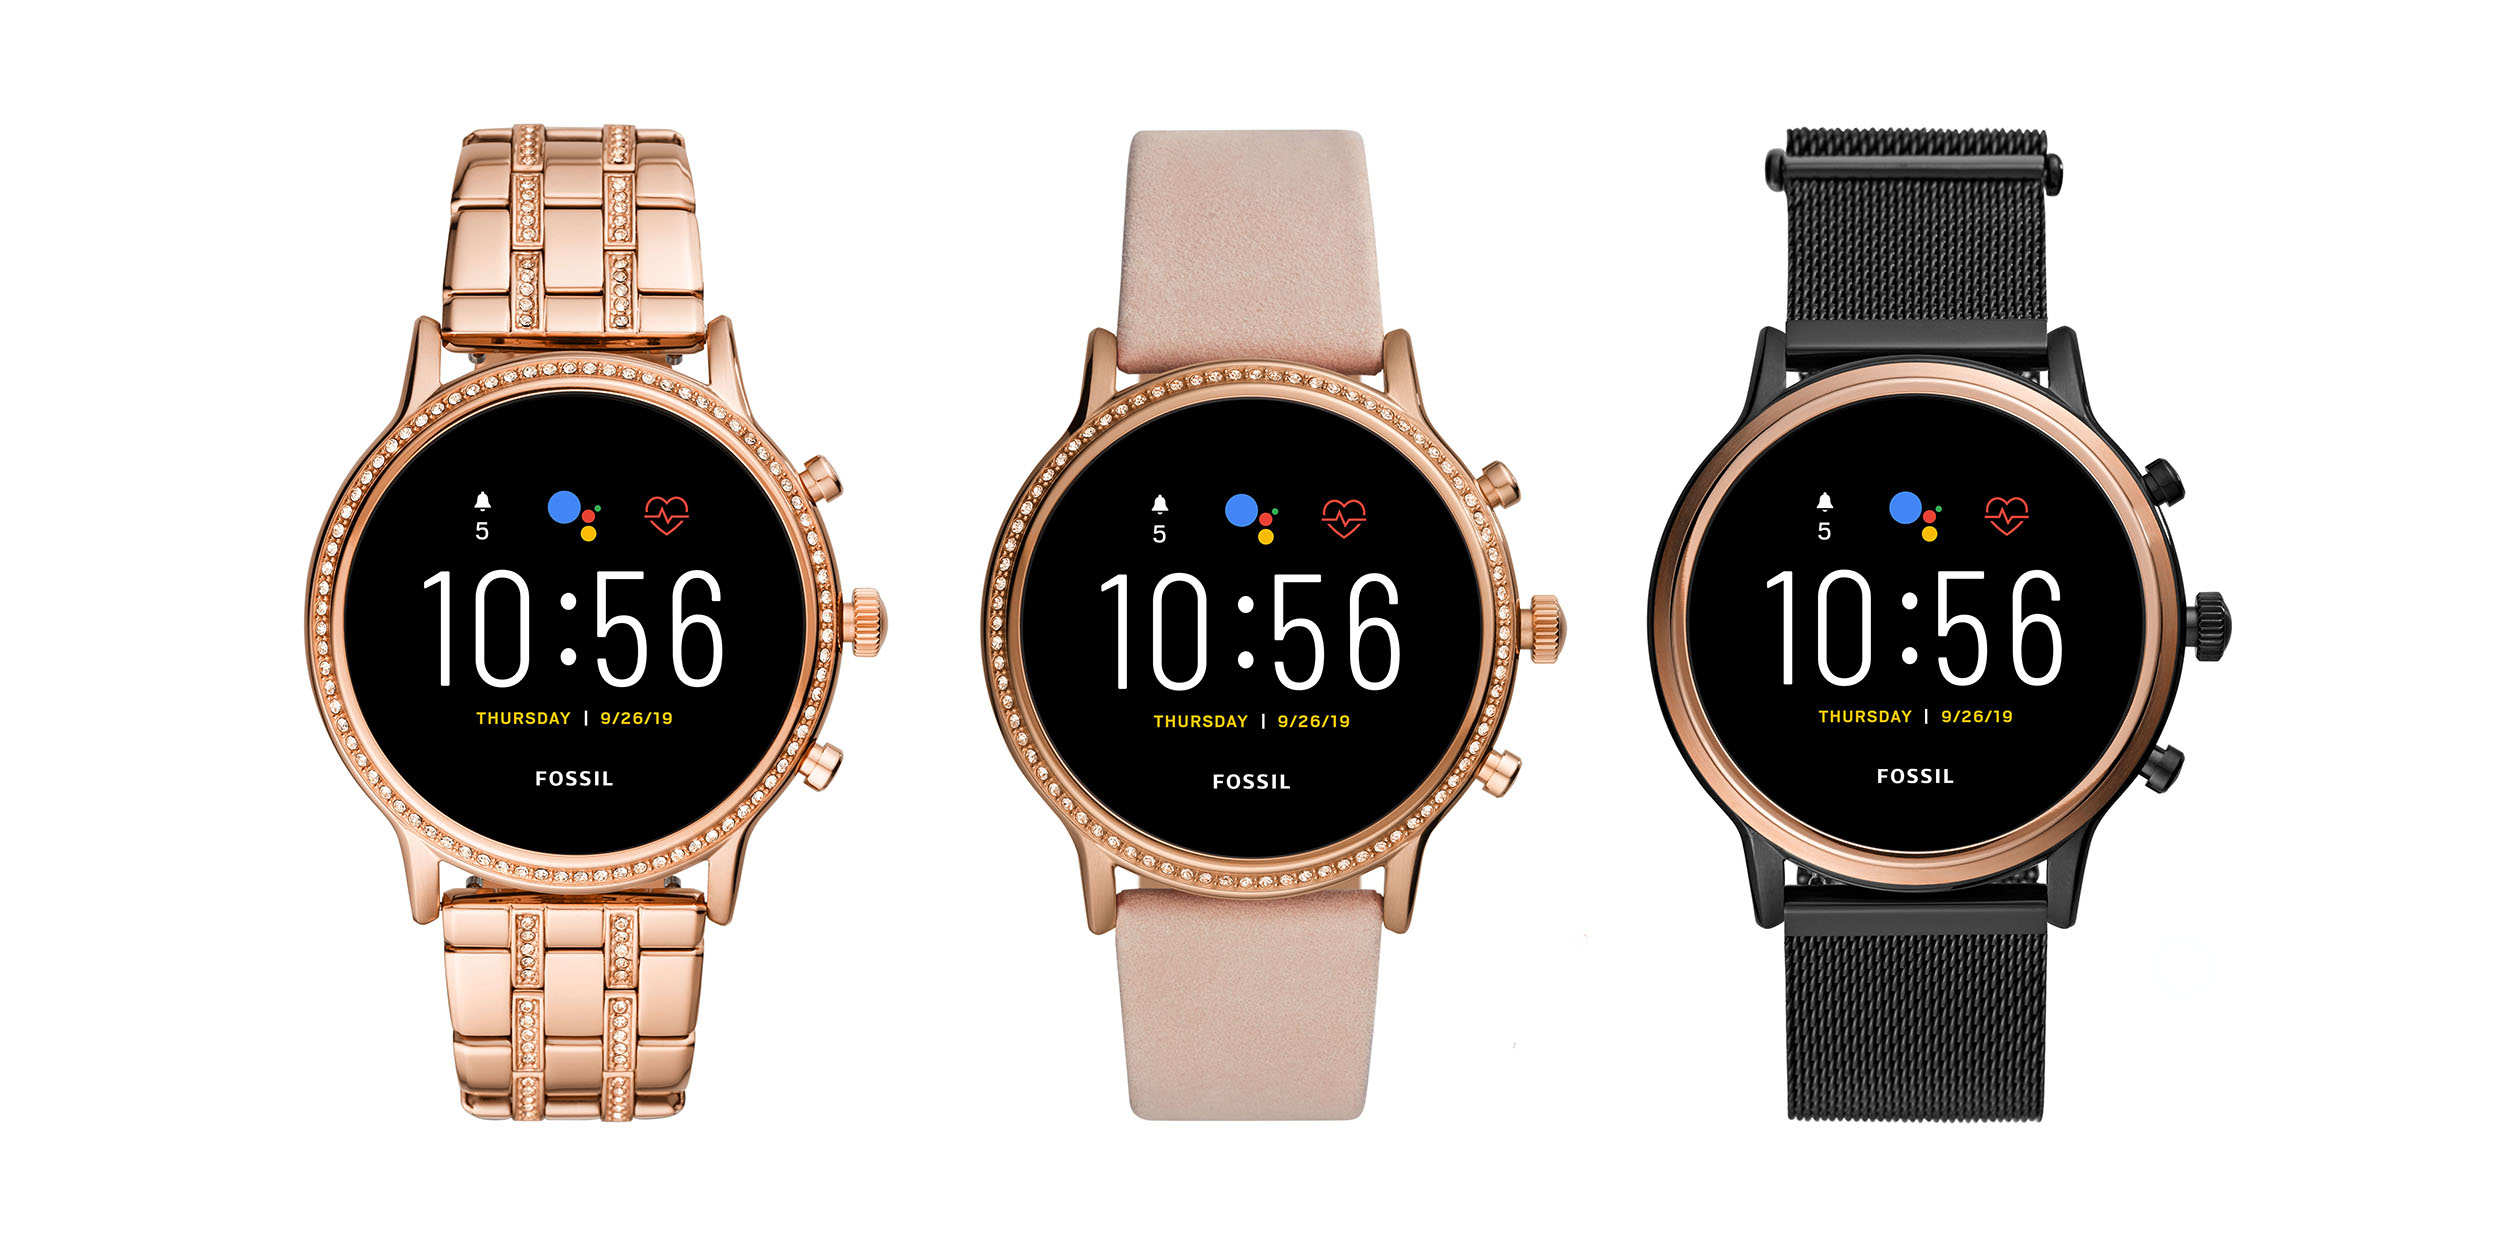 Best Smartwatch 2020 Android.Best Android Smartwatches Wear Os Samsung More 9to5google